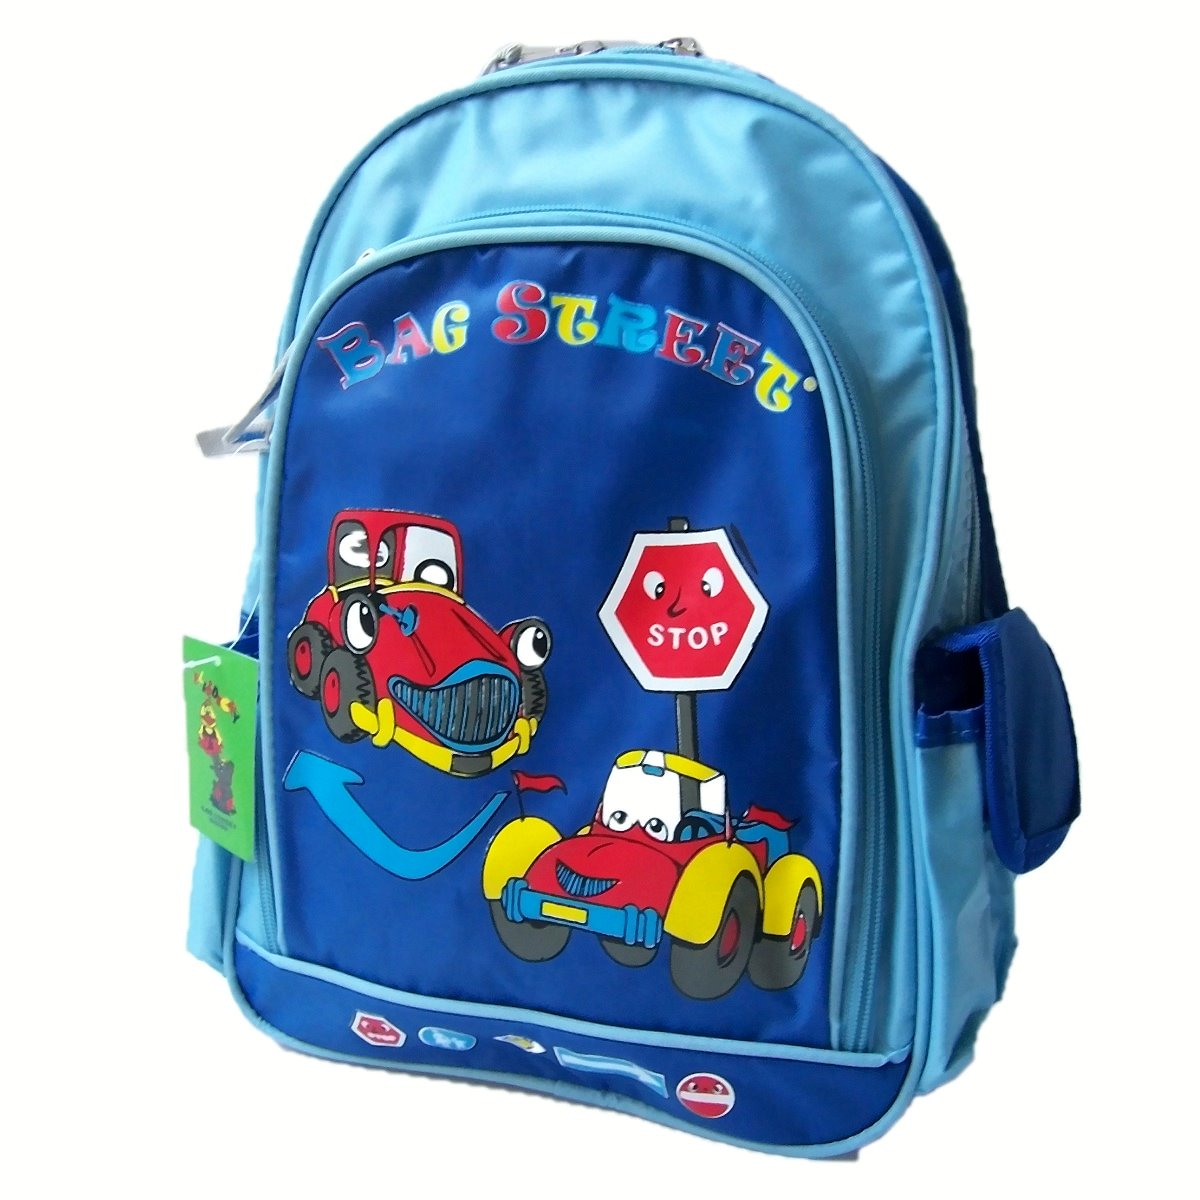 rucksack kinder freizeit kindergarten jungen blau hellblau ru8028. Black Bedroom Furniture Sets. Home Design Ideas